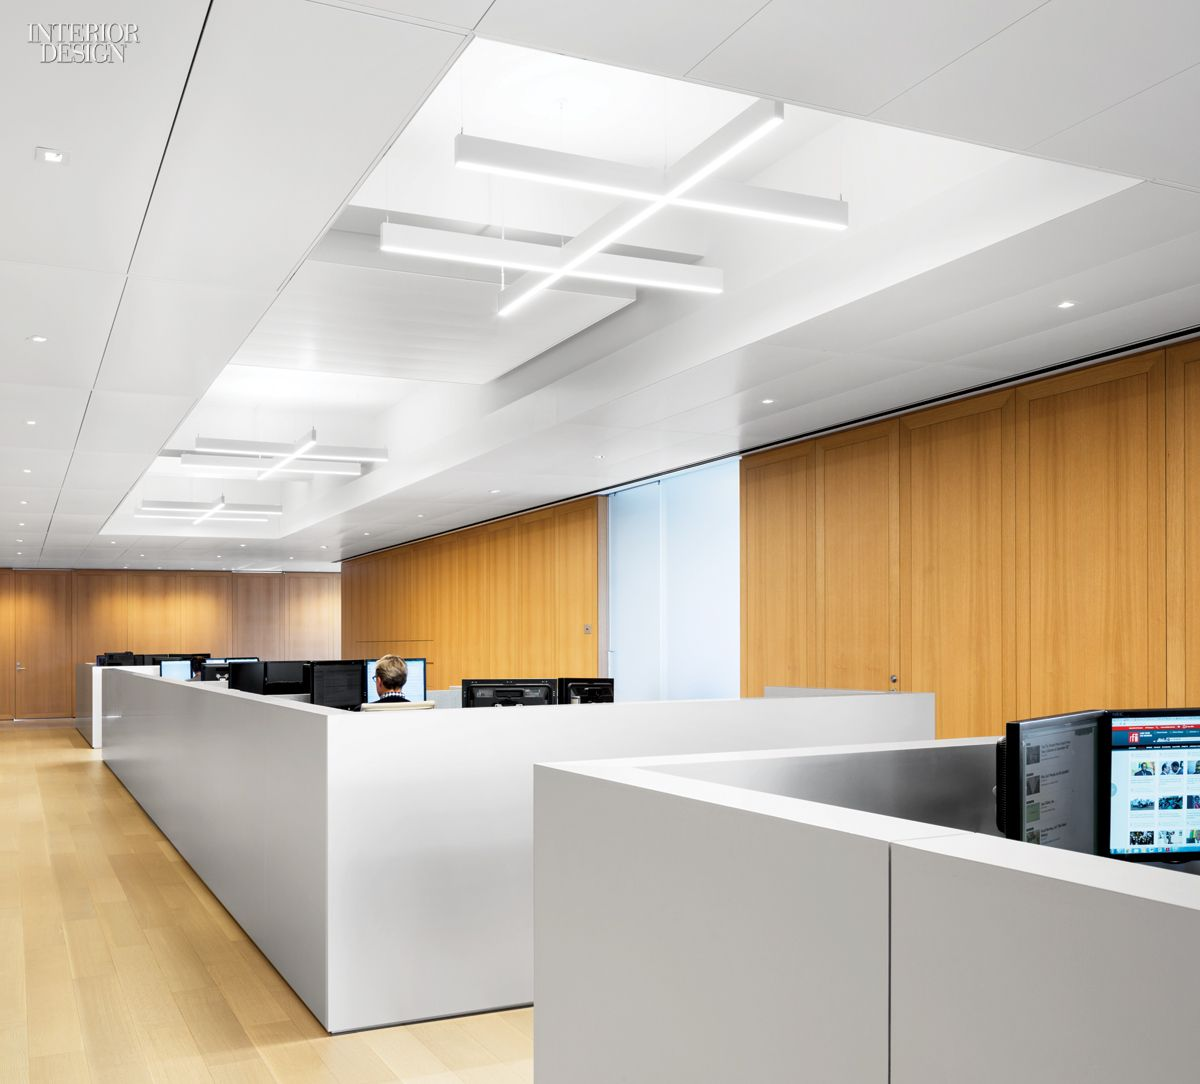 office interior design magazine. James Turrell Enlivens NYC Office By Lee Mindel And A+I. TurrellWorkplace DesignOpen OfficeInterior Design MagazineInterior Interior Magazine N